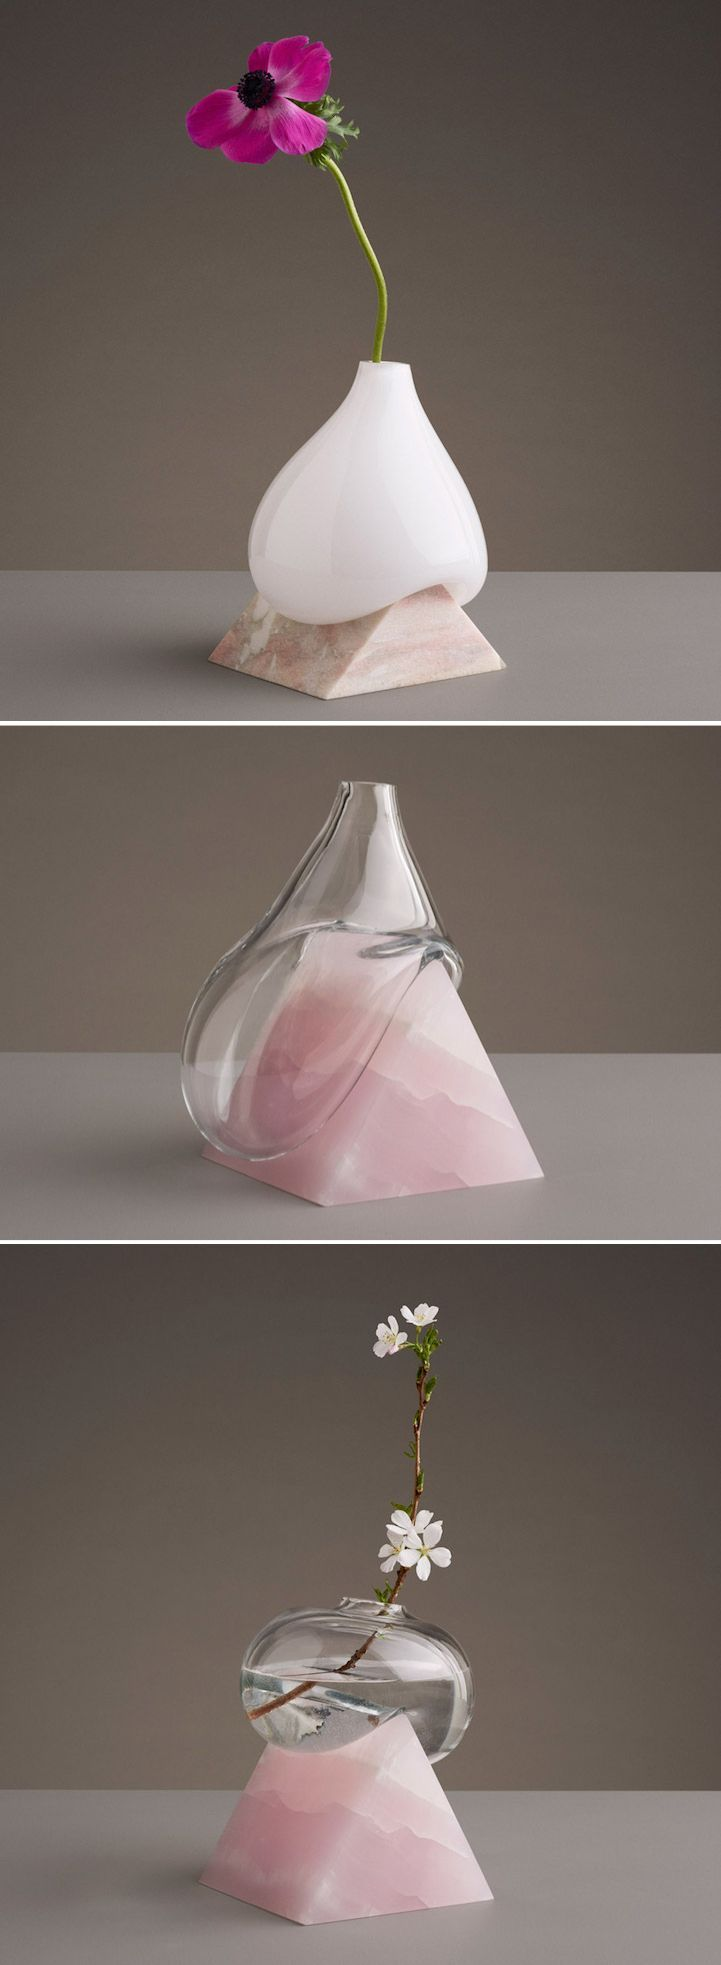 Designer Erik Olovsson of Studio E.O | melting glass | sculpture | art | creative planters